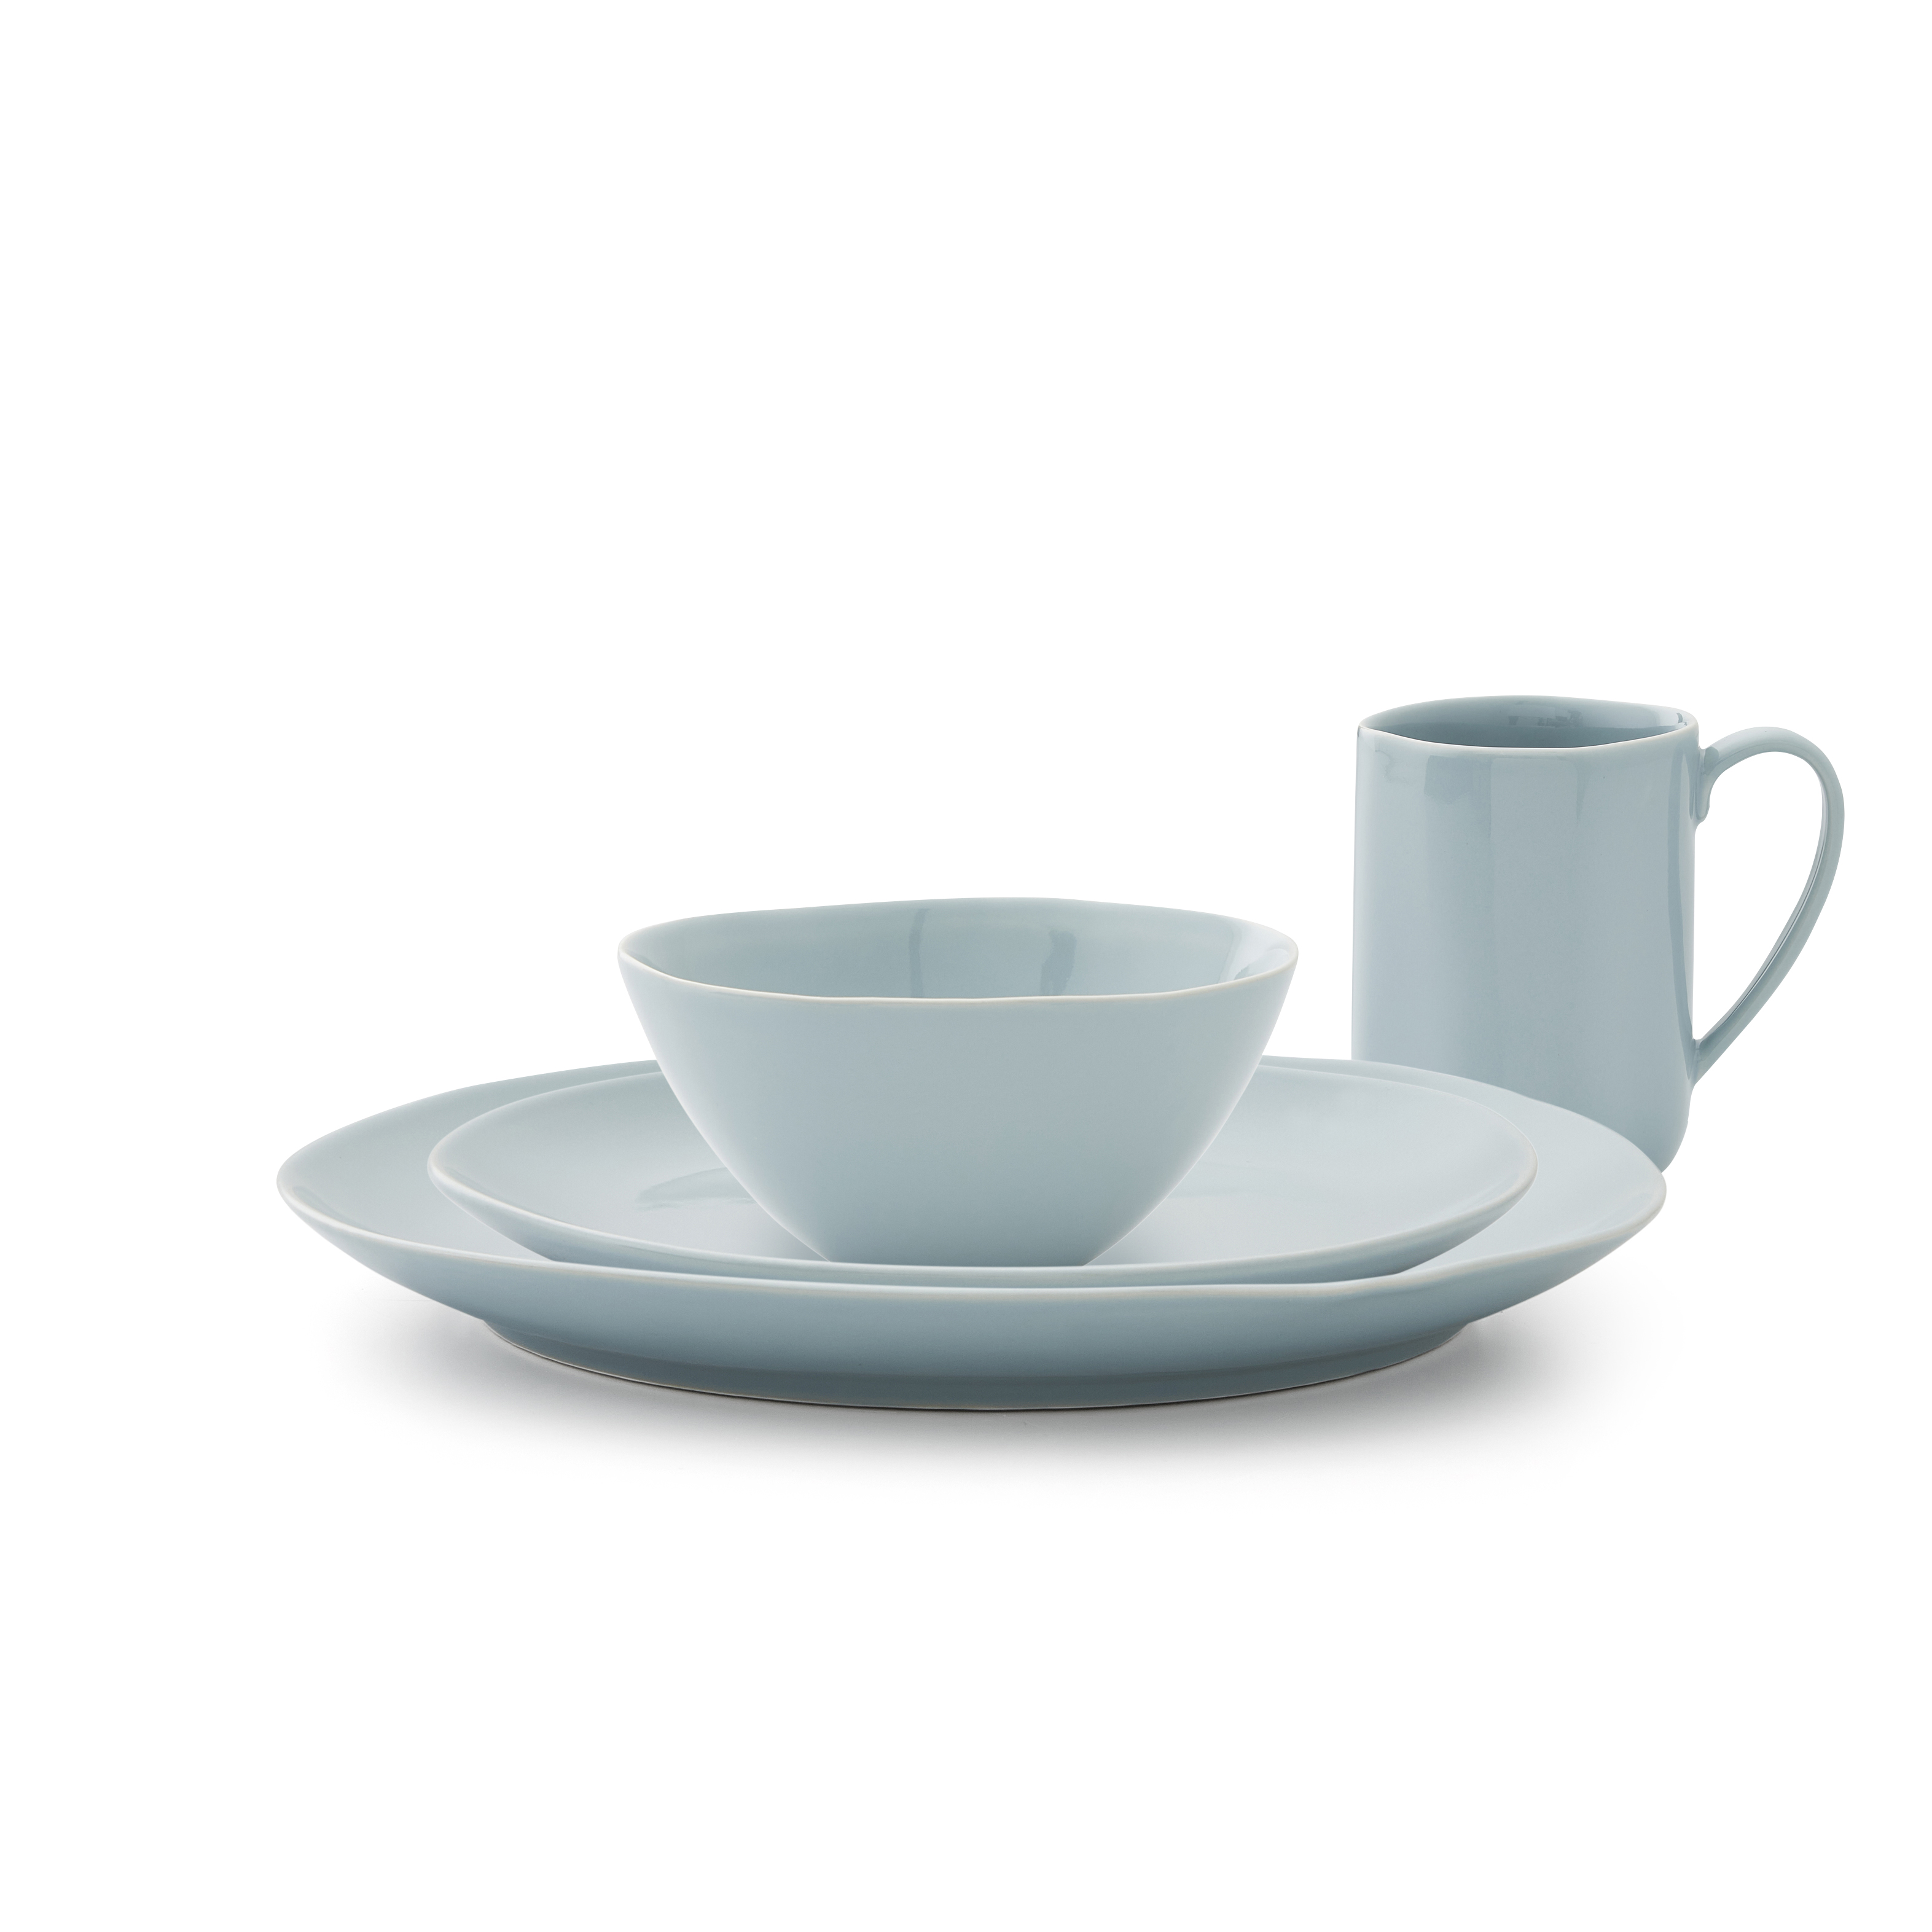 Sophie Conran Arbor 4 Piece Place Setting- Robin's Egg image number 0